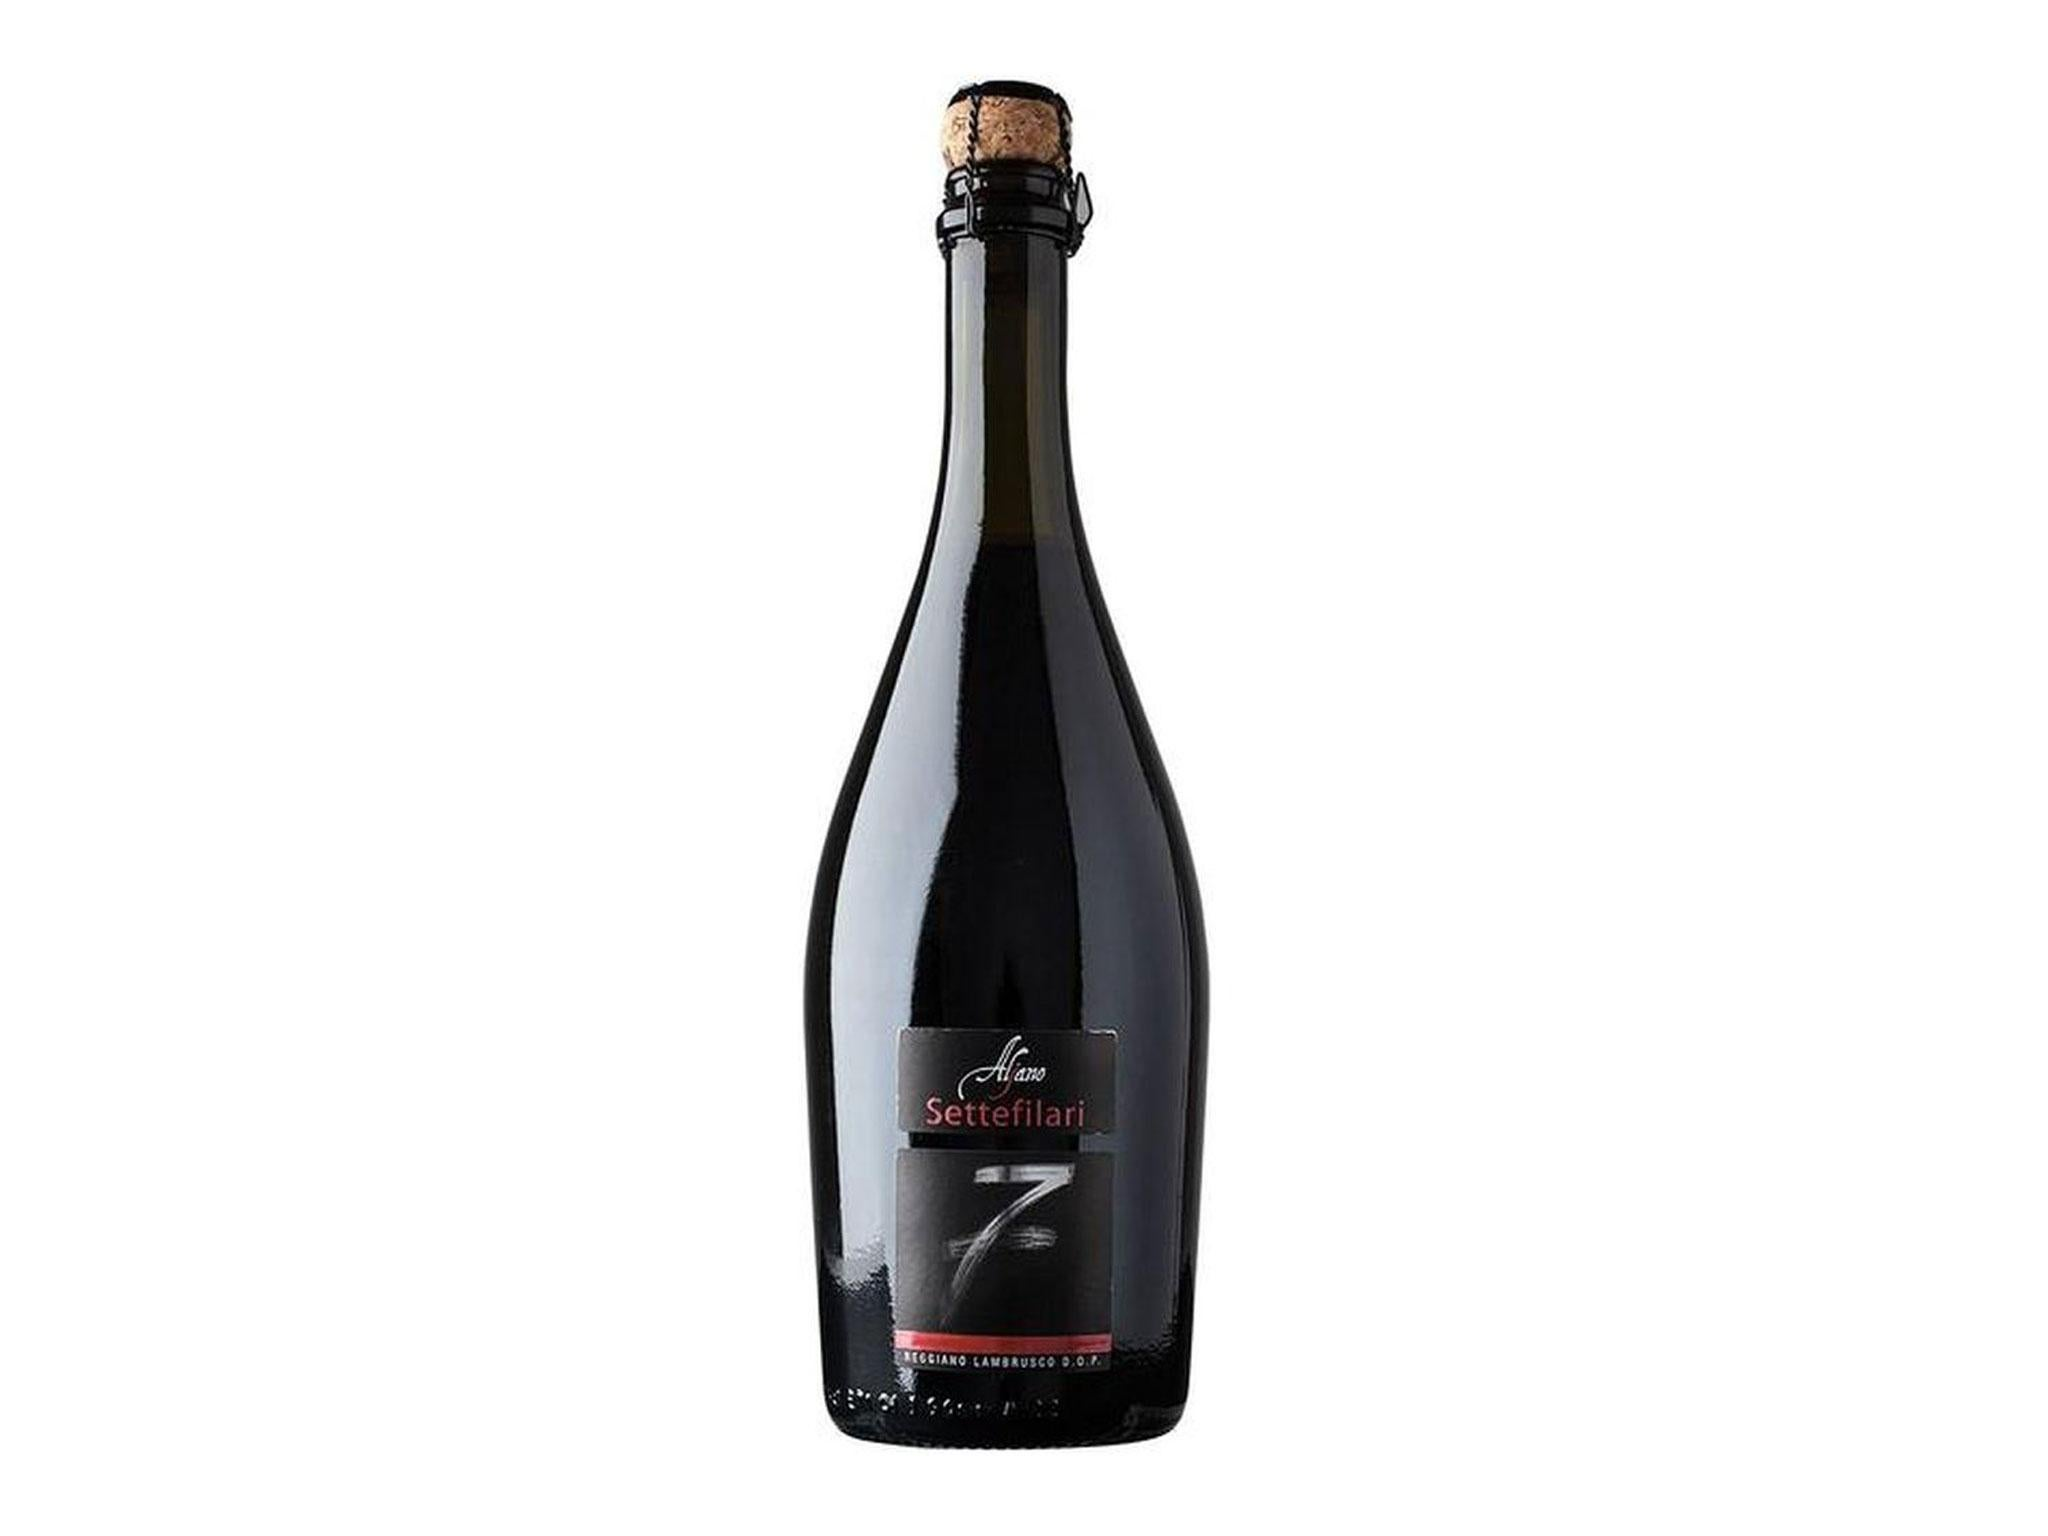 Lambrusco - grape variety or sparkling wine: reviews and production features 85